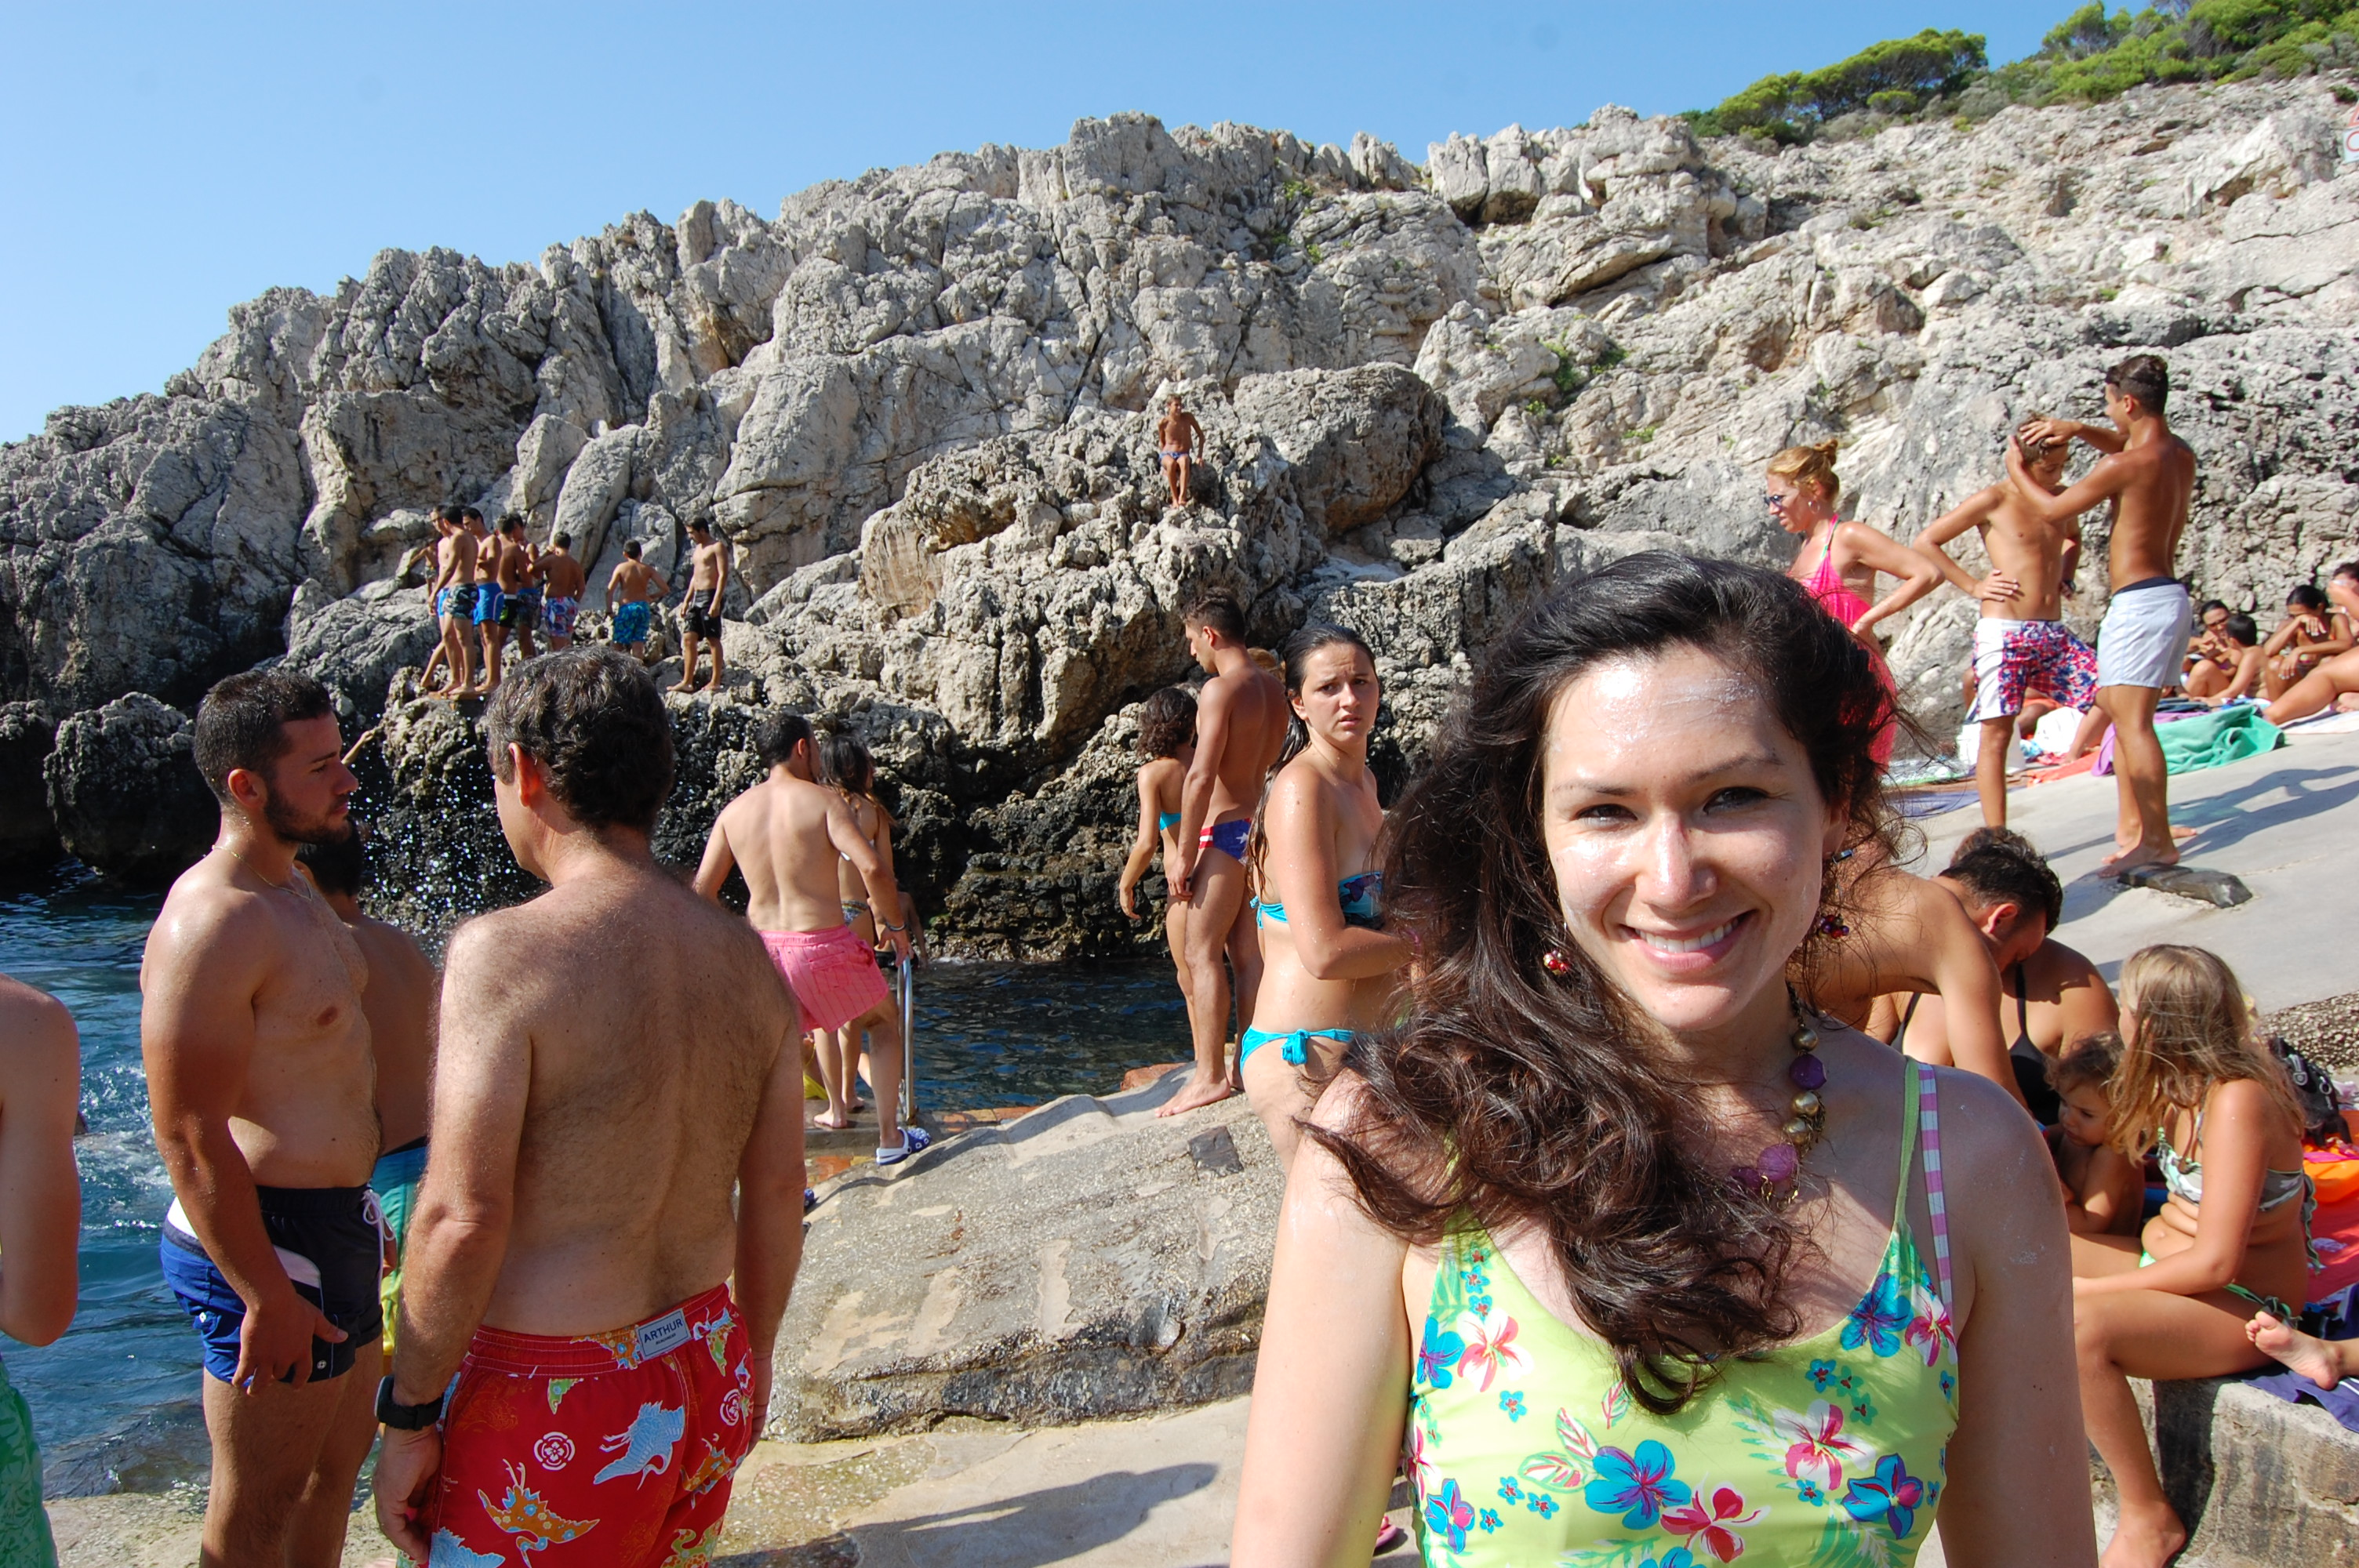 Real-life salty look (courtesy Tyrrhenian sea/buckets of sweat from a brisk tromp up to Tiberius' villa)